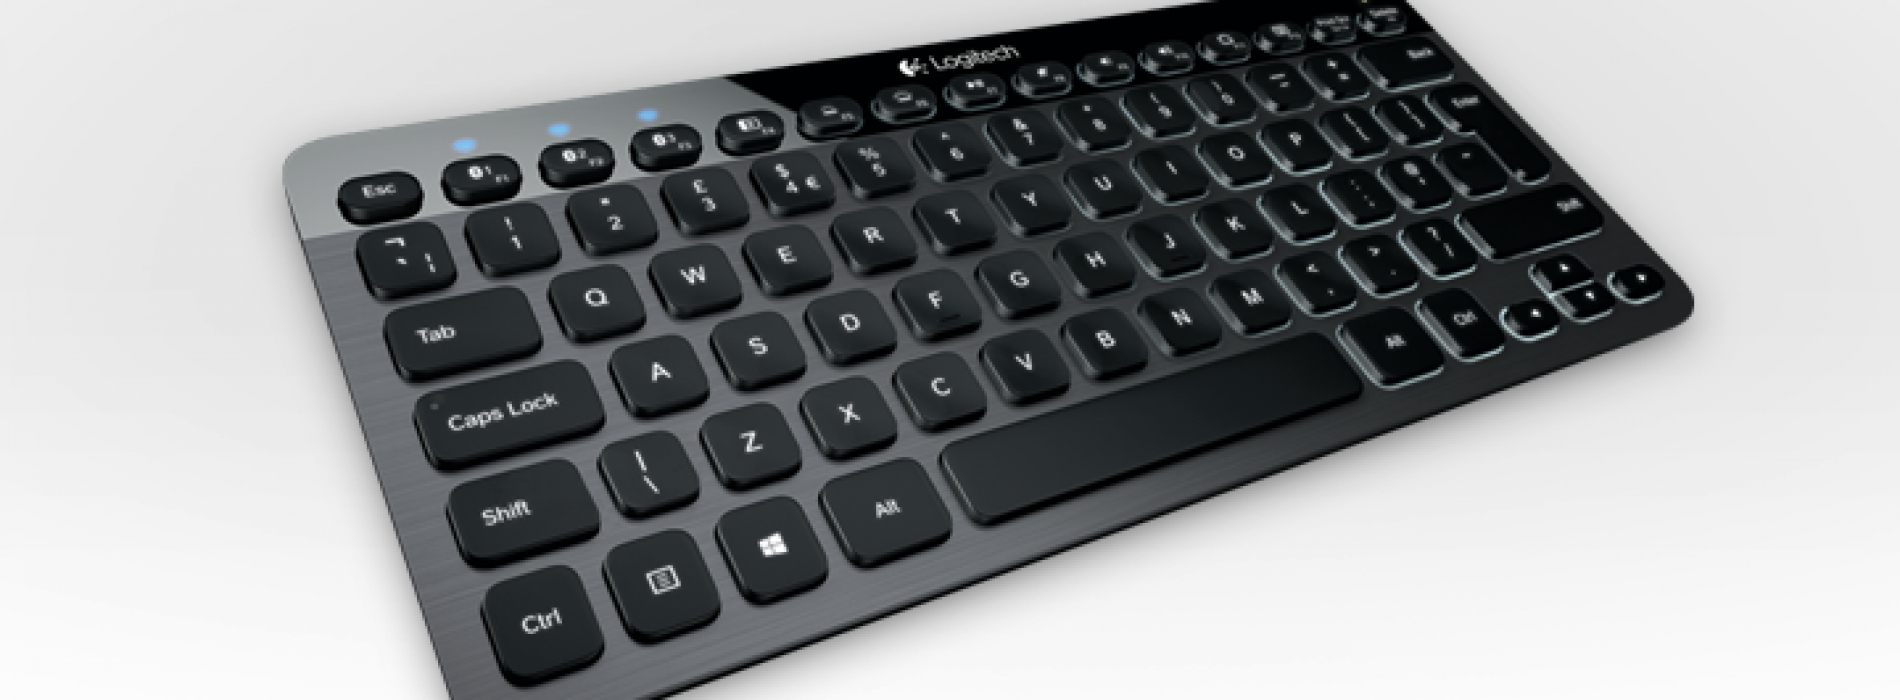 Logitech debuts K810 backlit Bluetooth keyboard